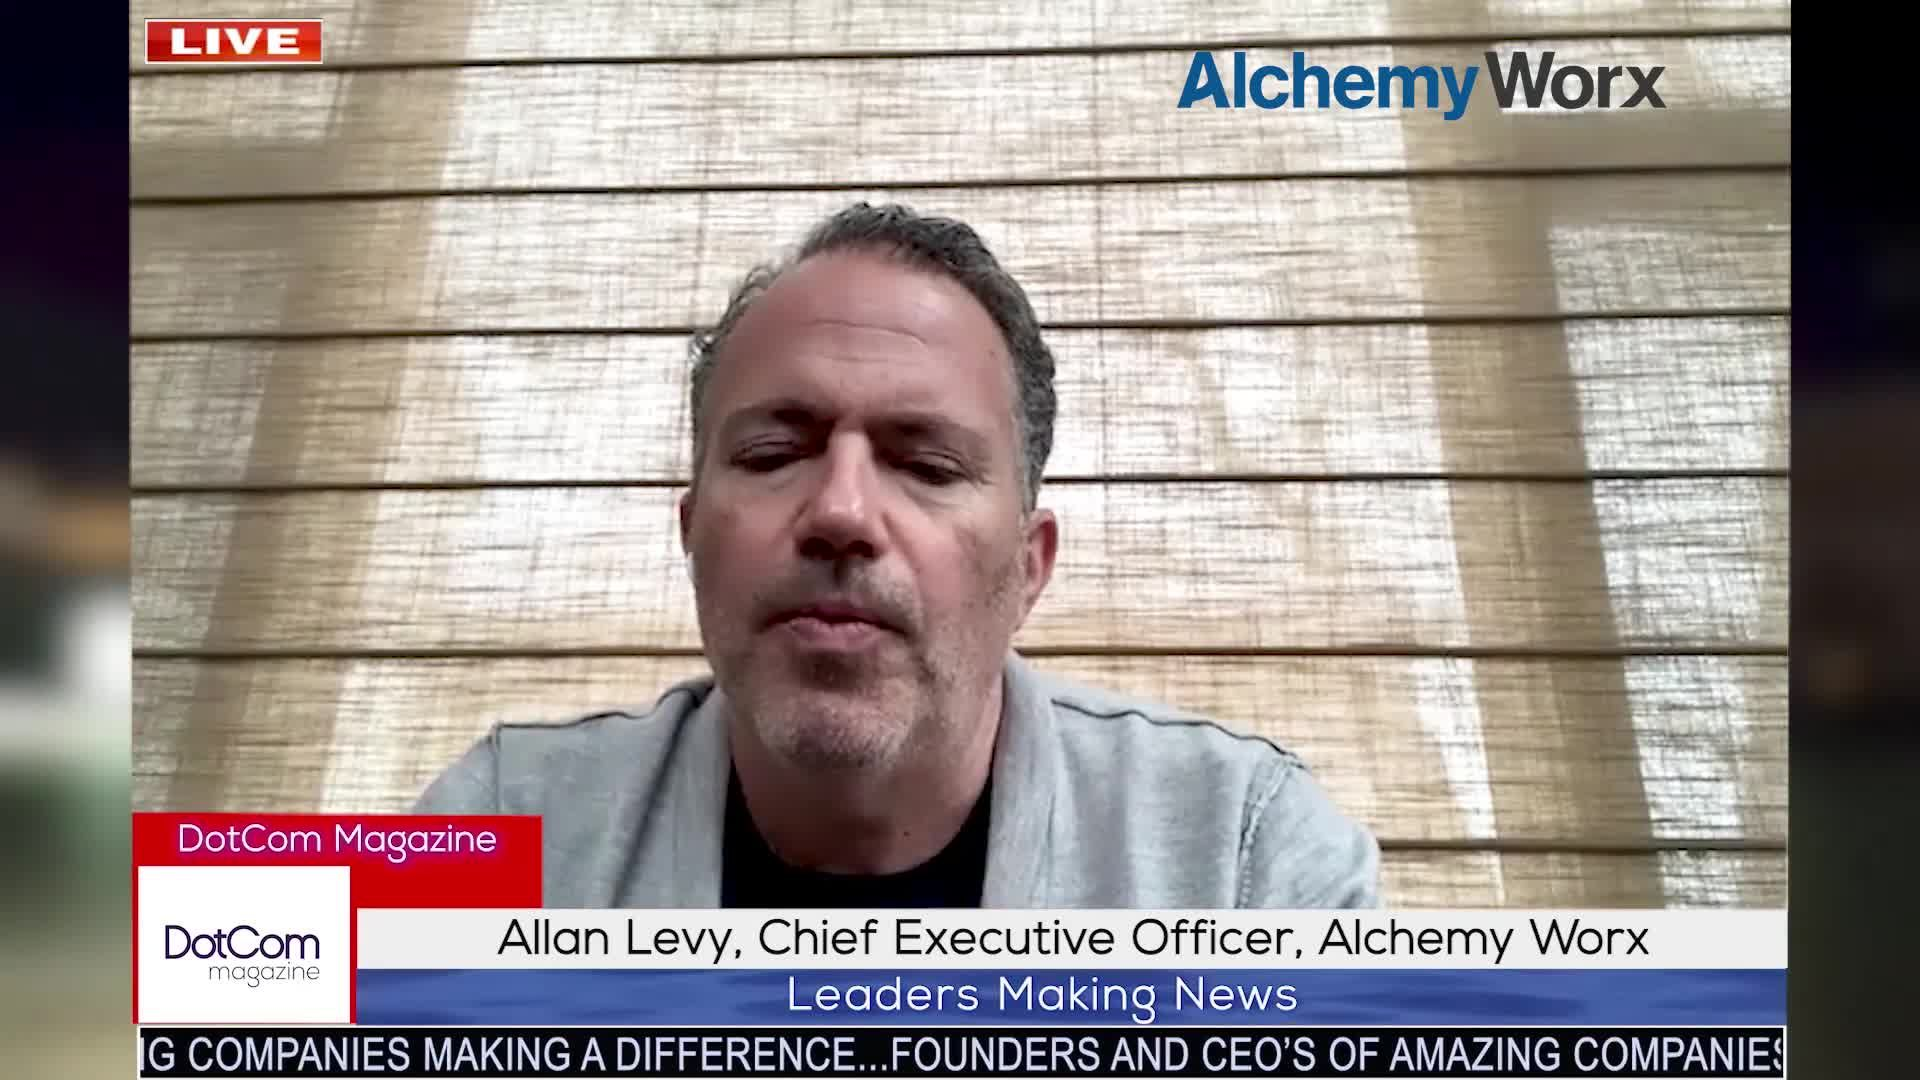 Allan Levy. Chief Executive Officer, Alchemy Worx, A DotCom Magazine Exclusive Interview